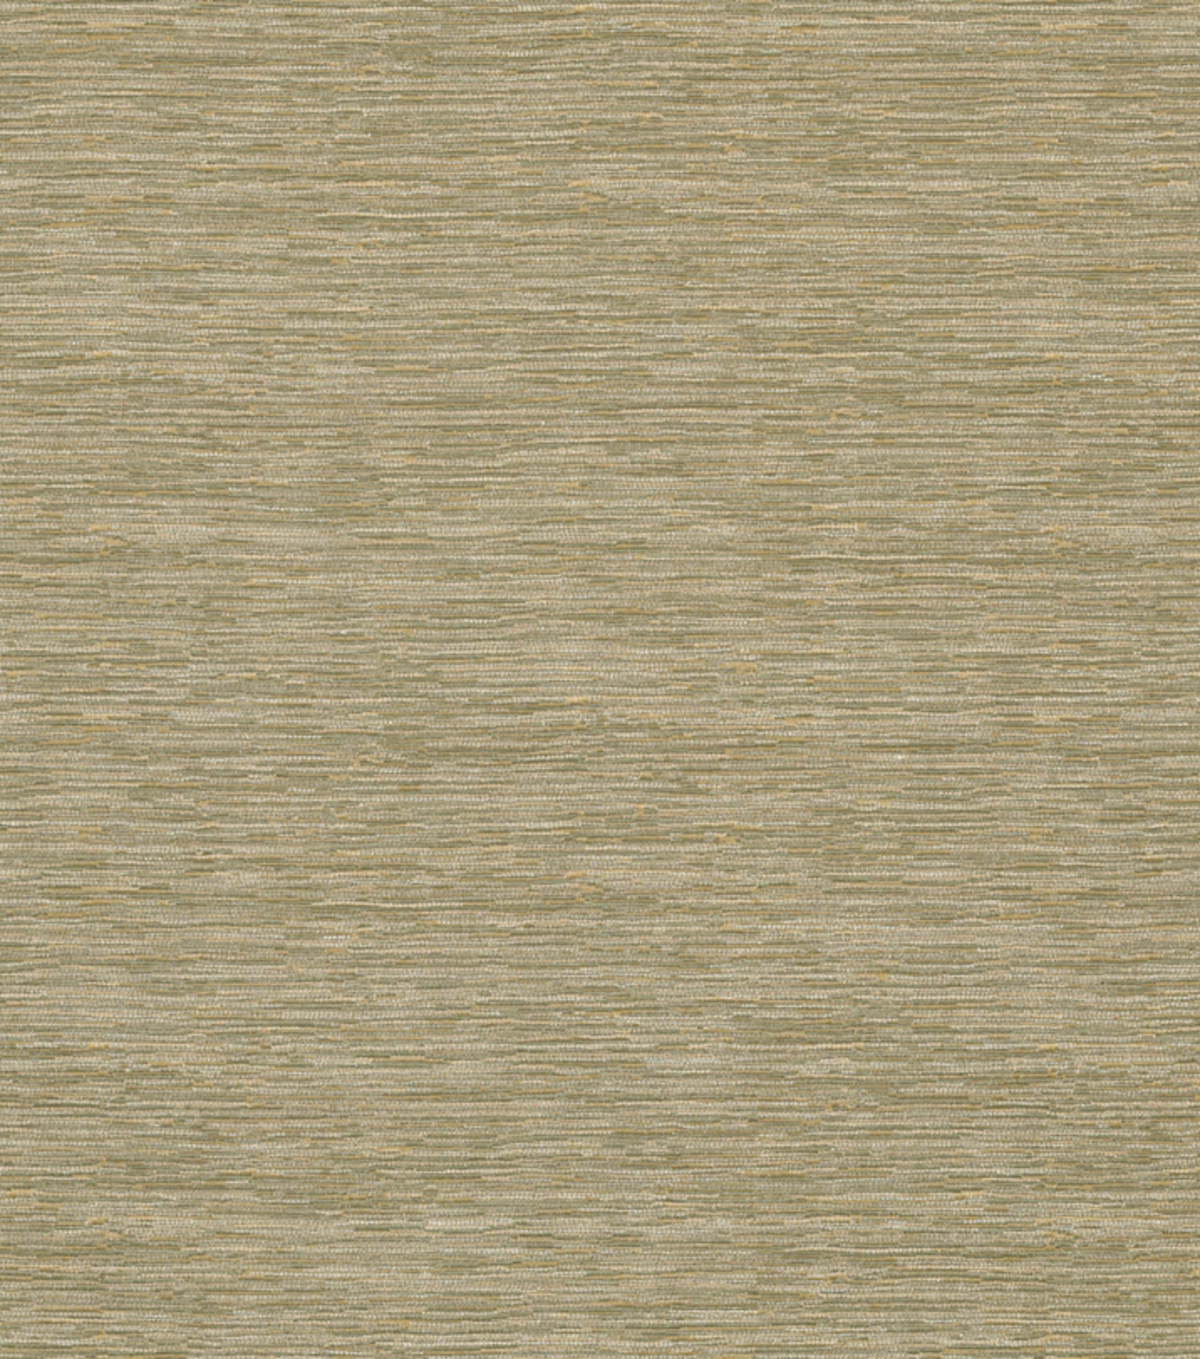 Home Decor 8\u0022x8\u0022 Fabric Swatch-Caledonia Sage